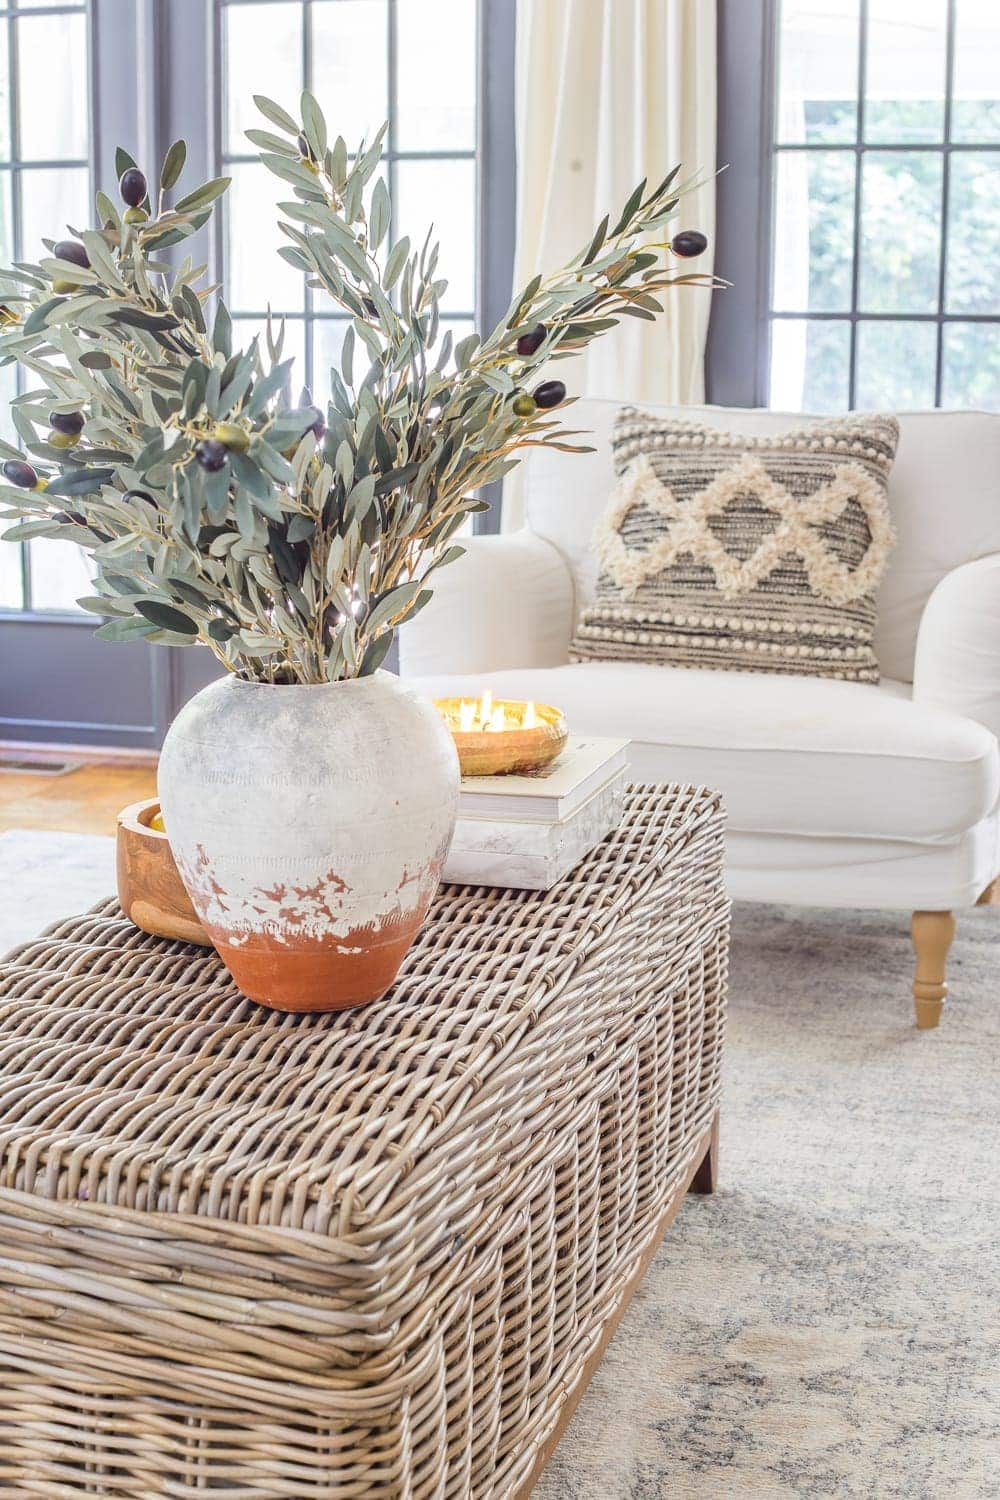 Neutral Fall Faux Greenery | Why ditching traditional fall colors is a better decorating decision to stretch your dollars + the best neutral fall greenery and decor on sale.